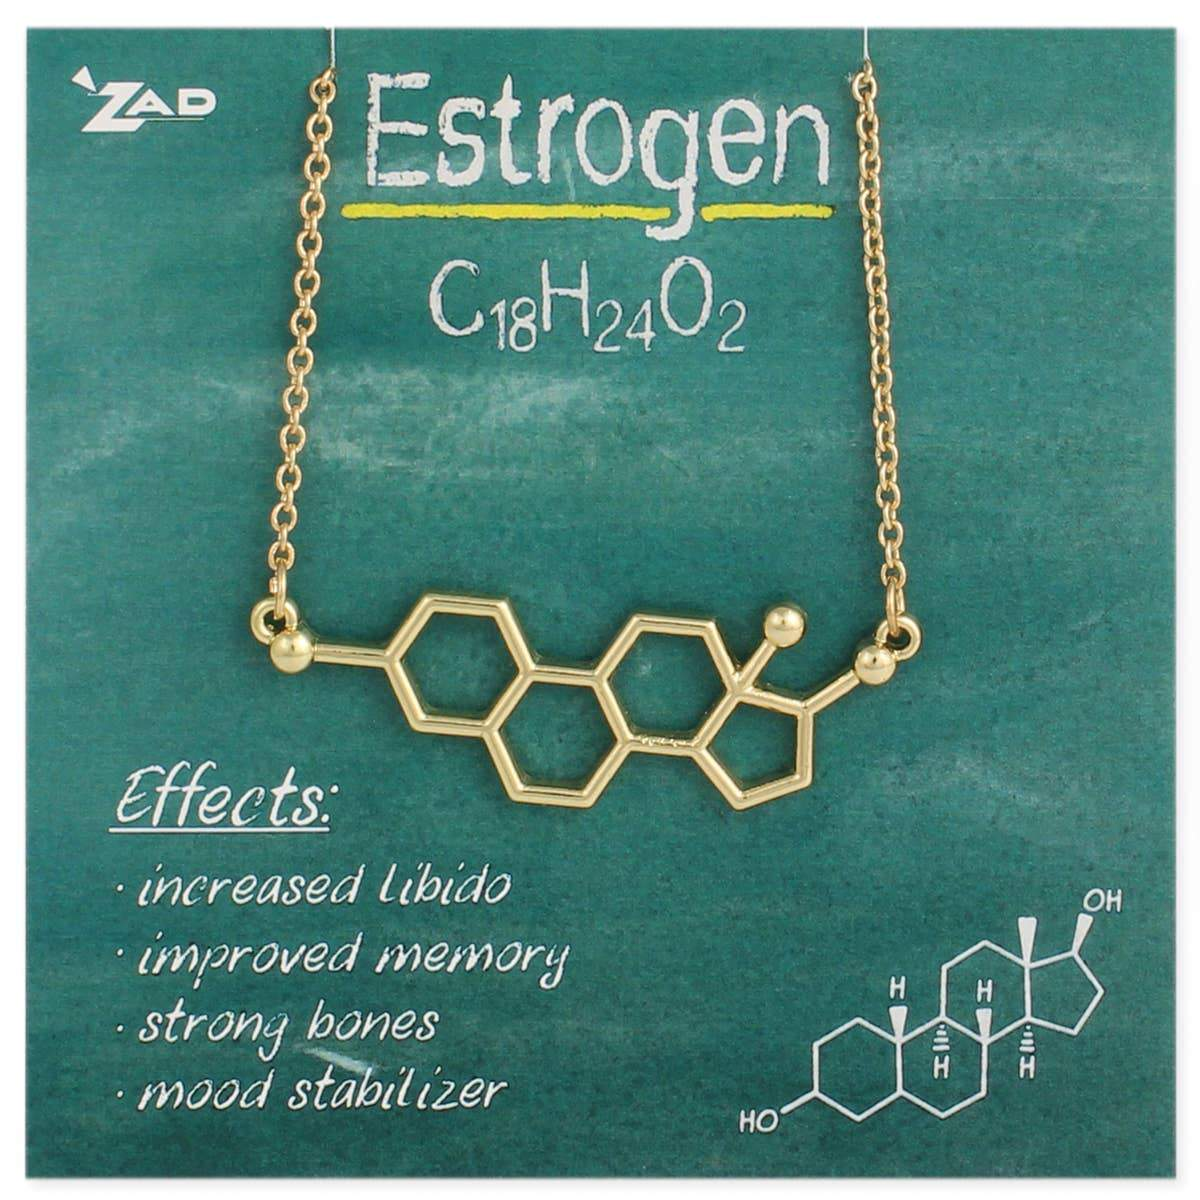 Estrogen Molecule Necklace-Silver Plated ZAD Clothing/Accessories